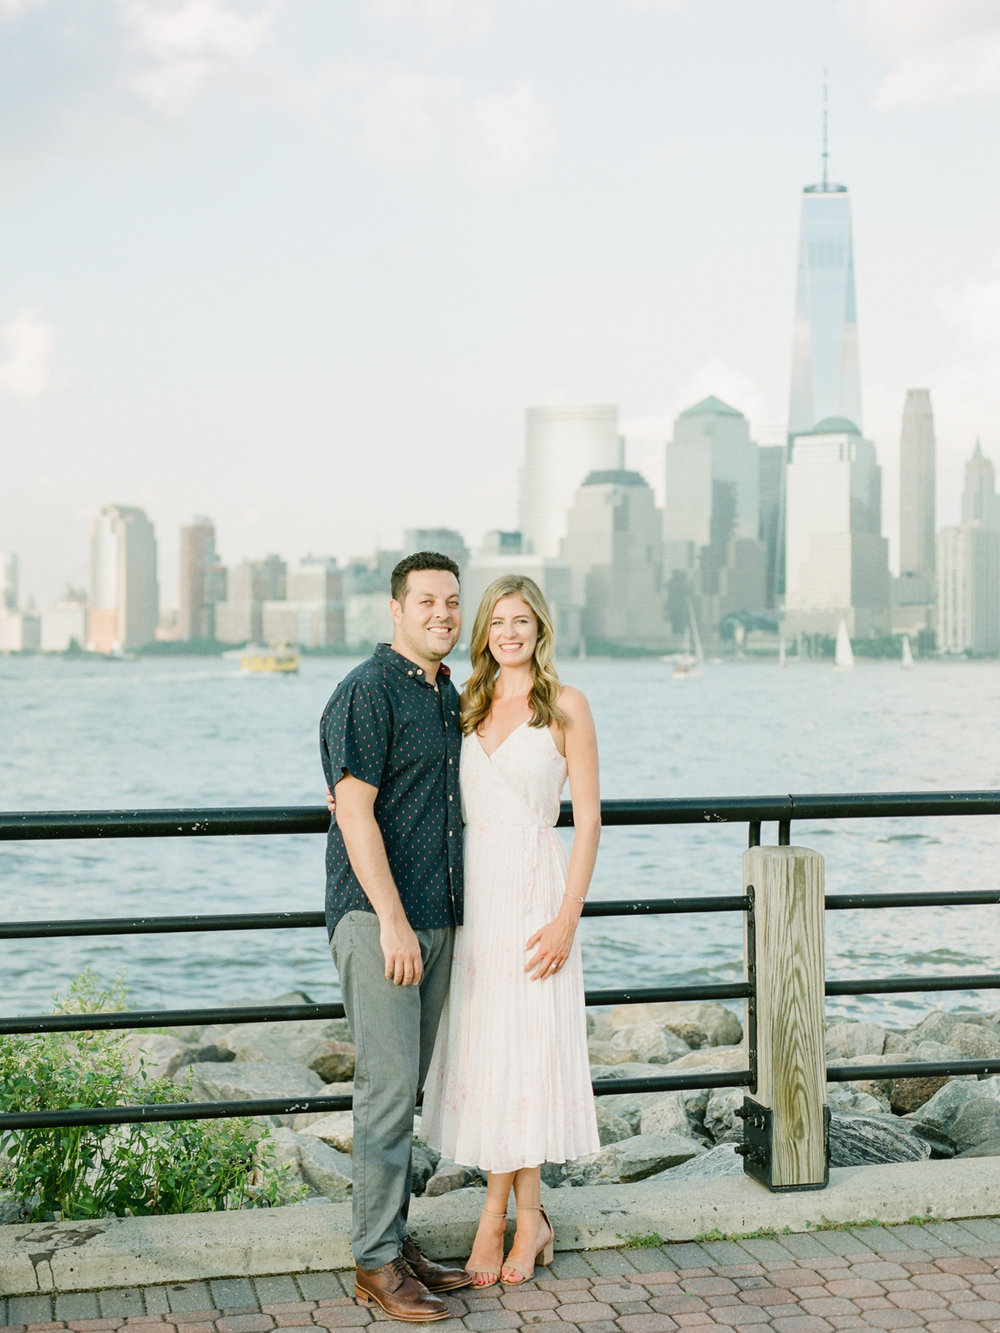 NYC-skyline-engagement-session-by-Tanya Isaeva-14.jpg